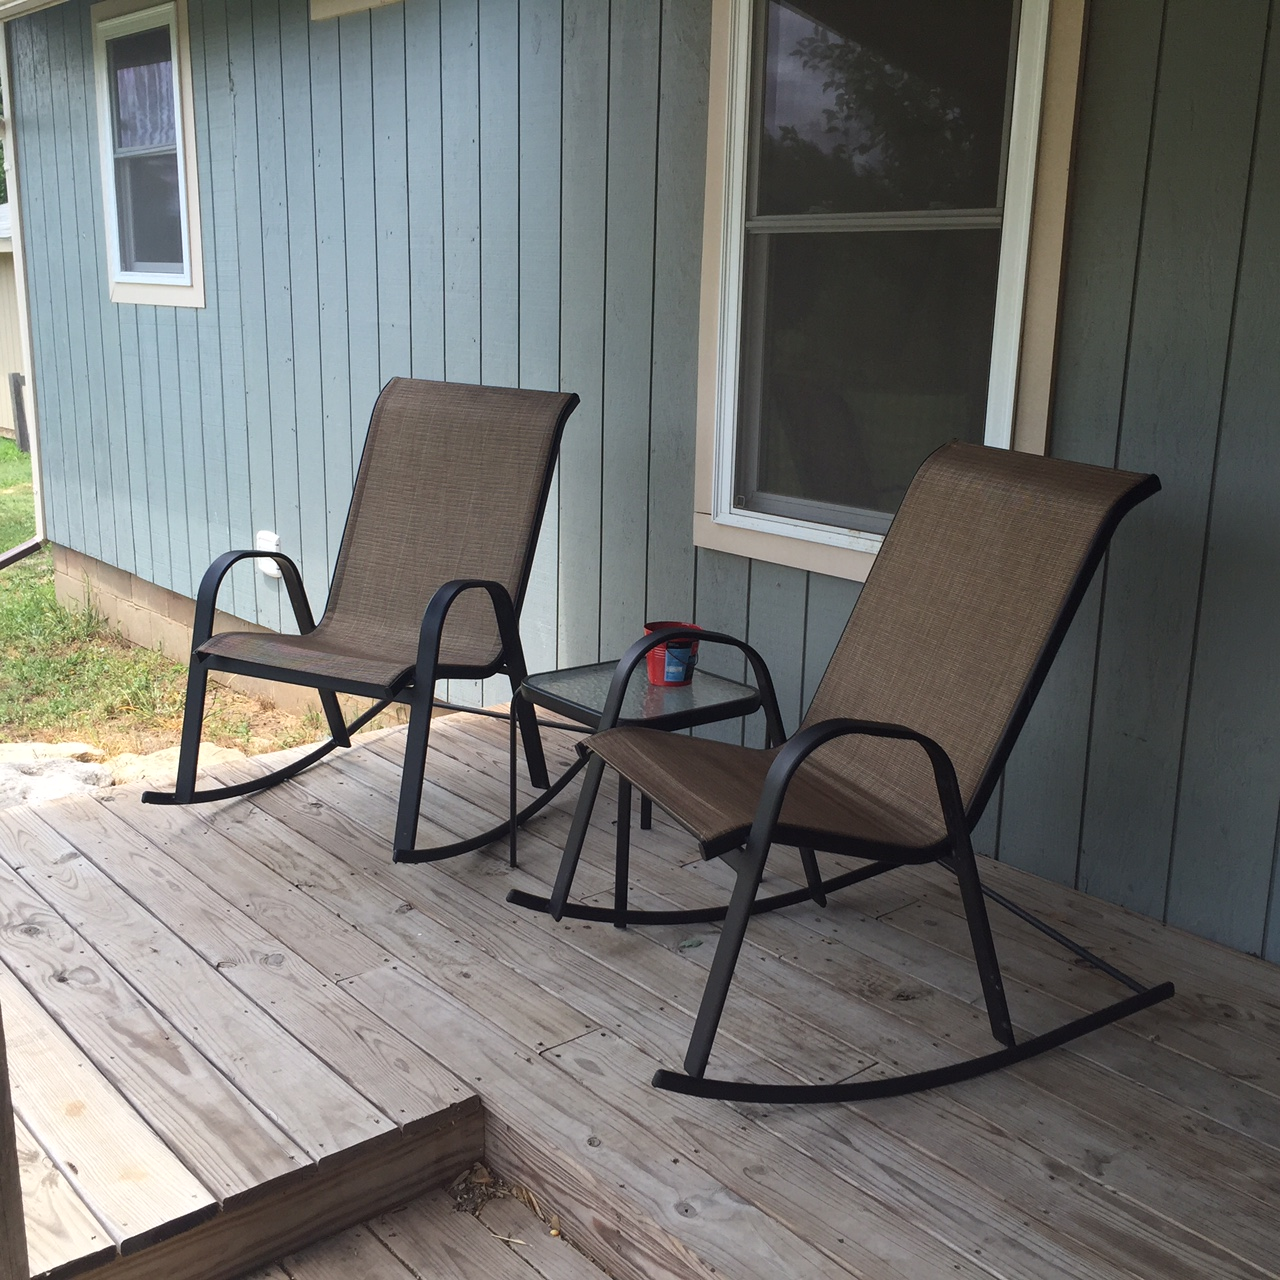 Teaching Little Miracles Five For Friday Theme Pack Sale Outdoor Furniture Tutoring And